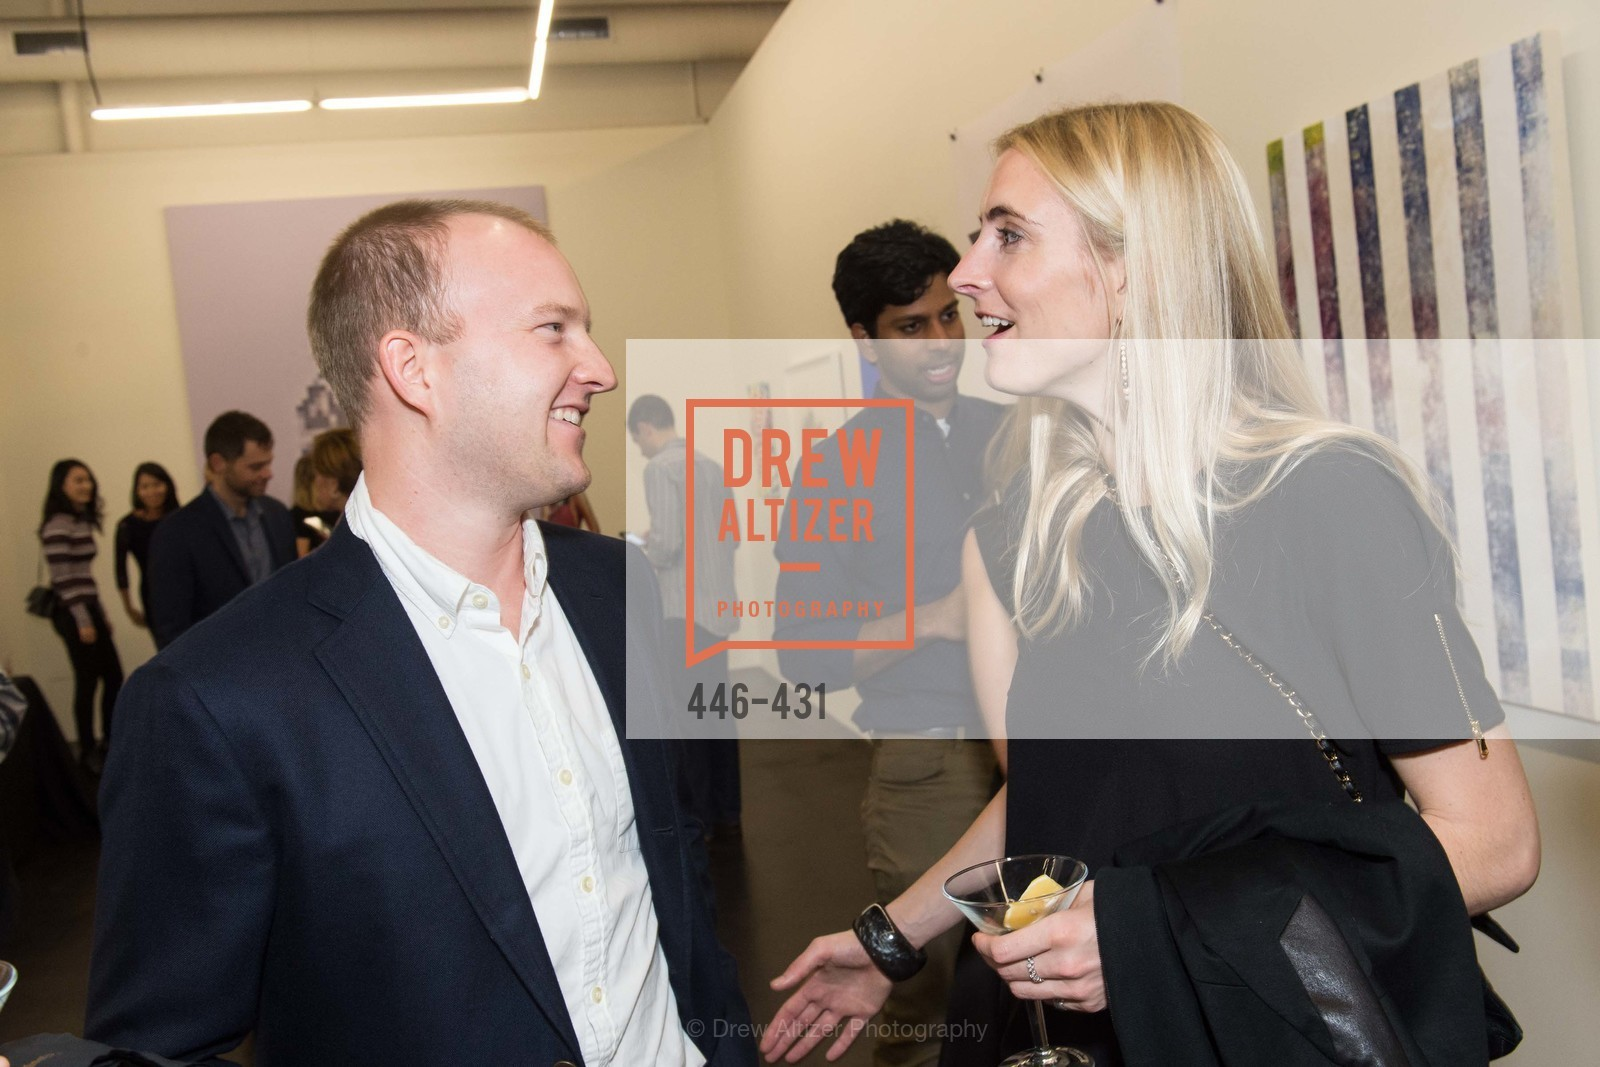 George McAdden, Alexis Humiston, Artsy + Sotheby's Closing Party, Fused. 1401 16th Street, October 30th, 2015,Drew Altizer, Drew Altizer Photography, full-service event agency, private events, San Francisco photographer, photographer California